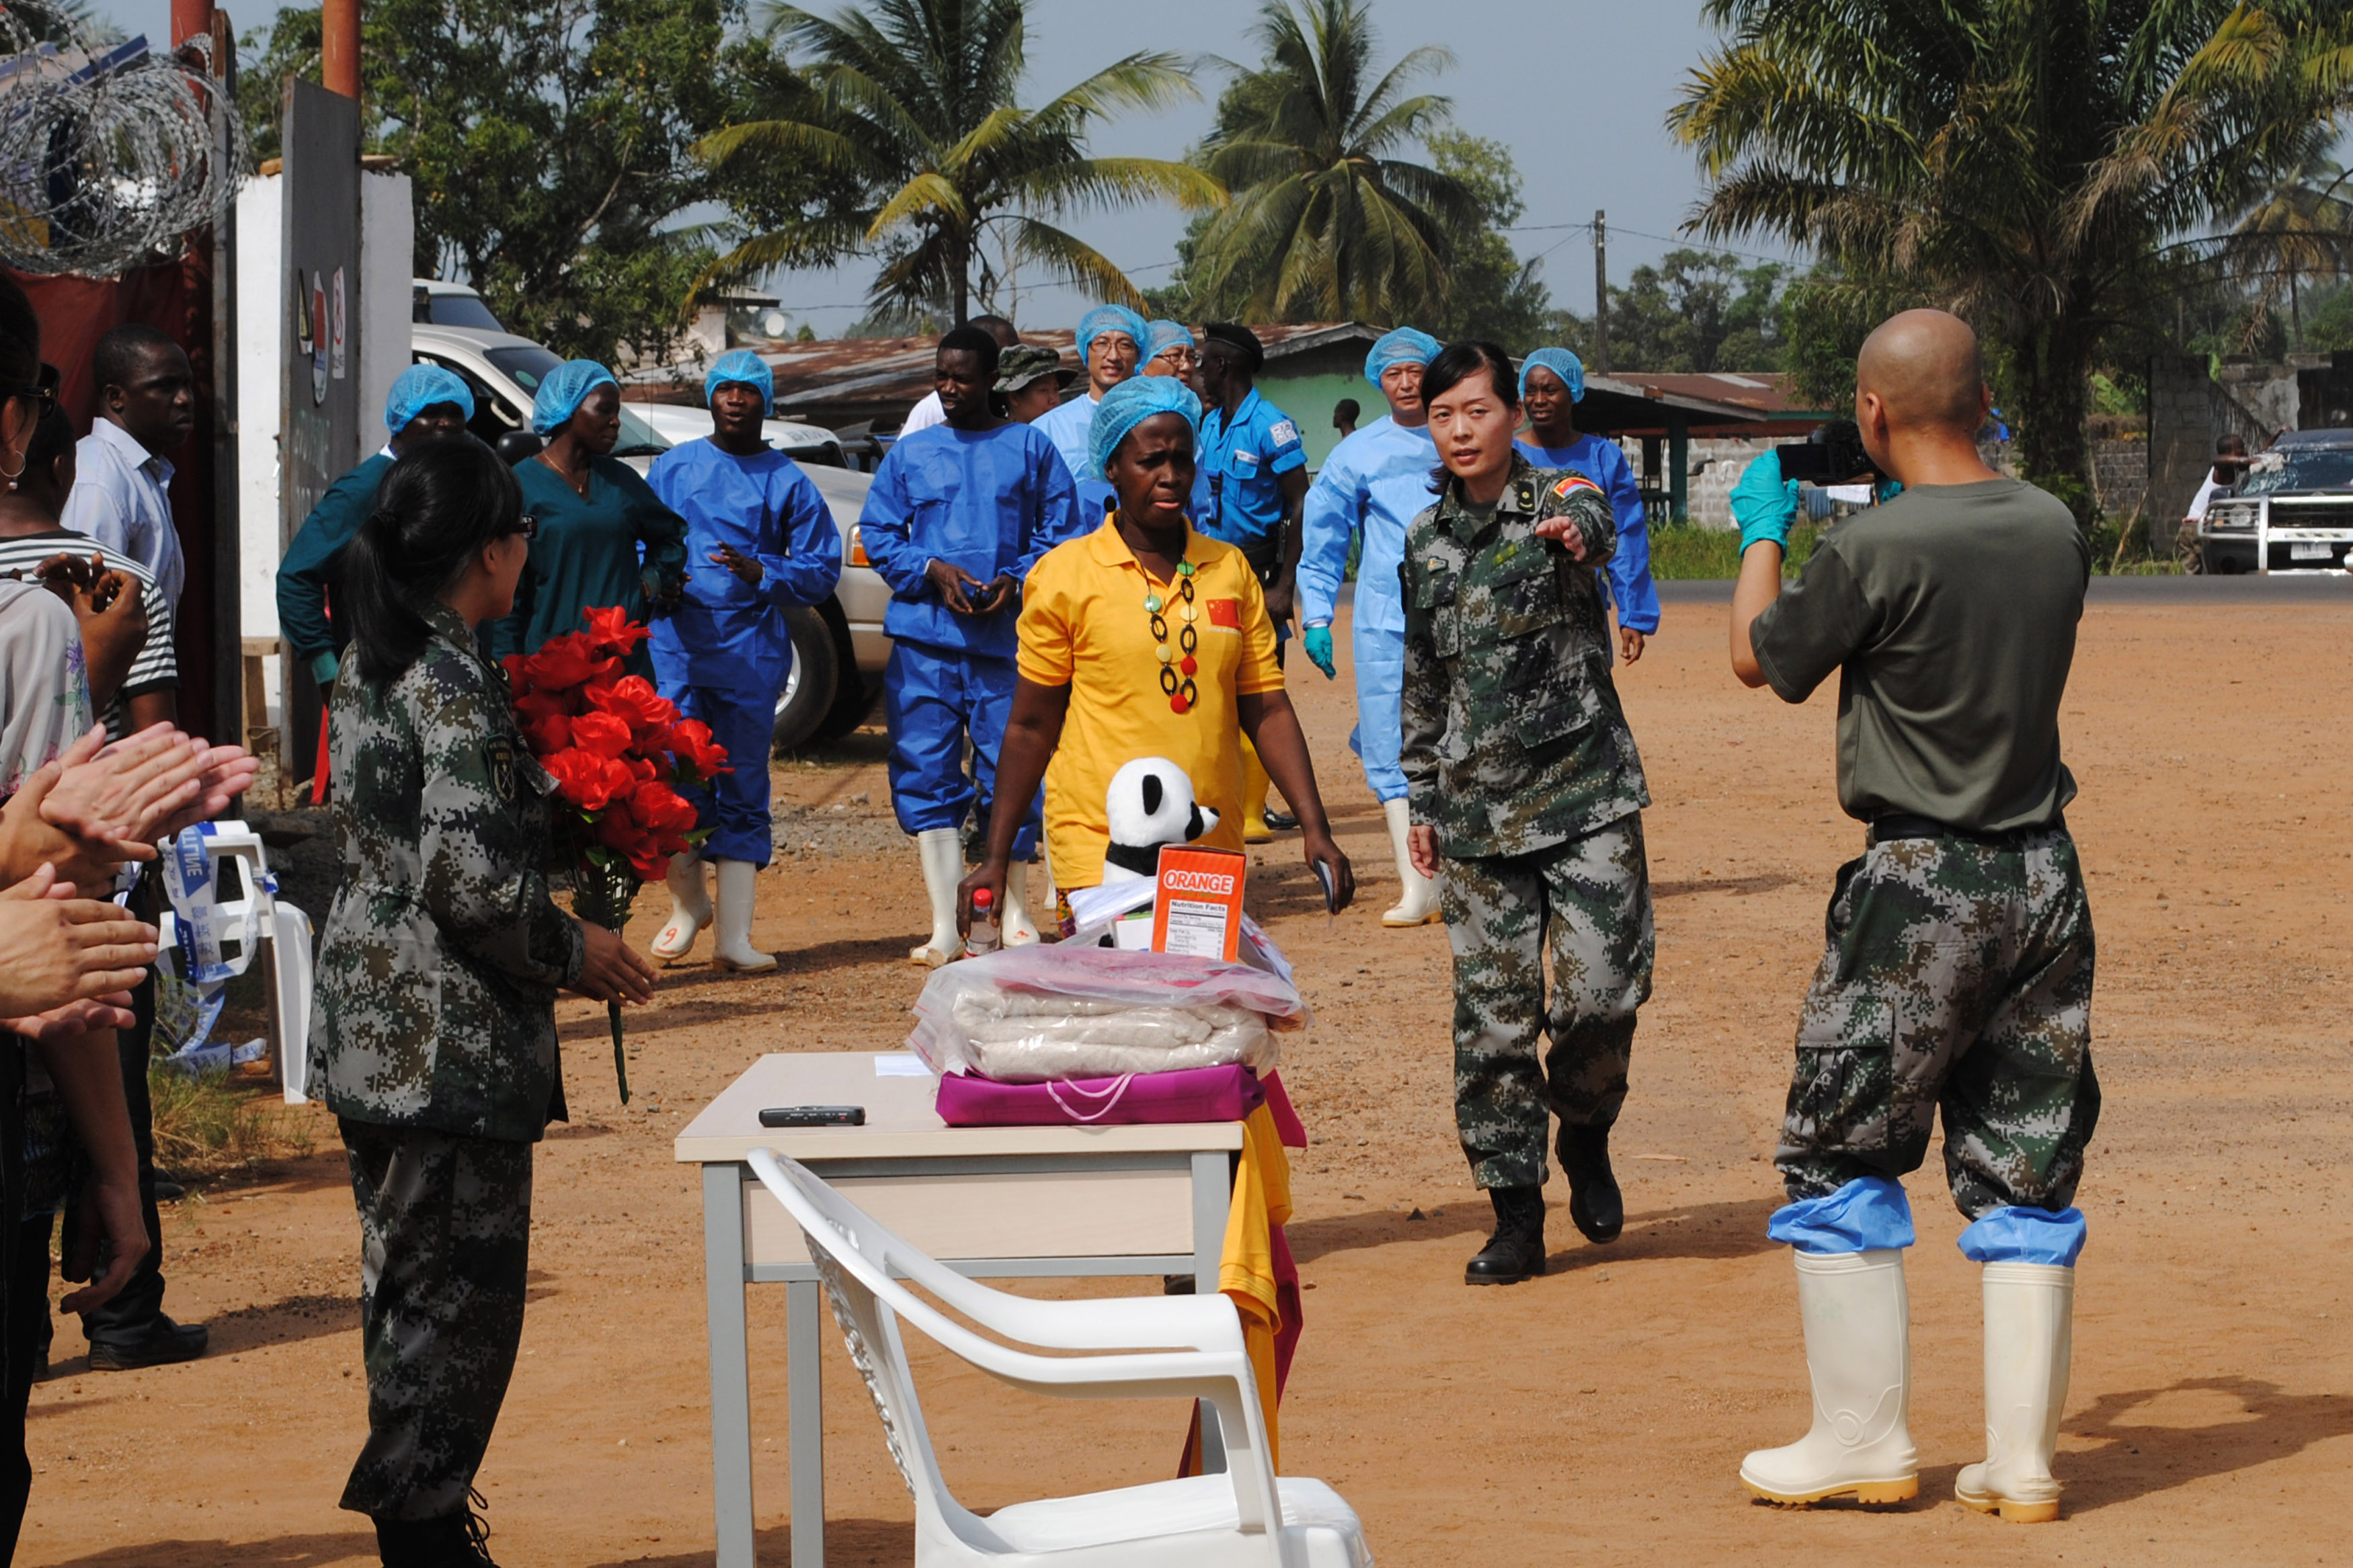 Liberia's last known Ebola patient Beatrice Yardolo (in yellow) arrives for a ceremony at the Chinese Ebola treatment unit, where she was treated, in Monrovia, Liberia, March 5, 2015. REUTERS/James Giahyue (LIBERIA - Tags: DISASTER HEALTH) - RTR4S7WZ